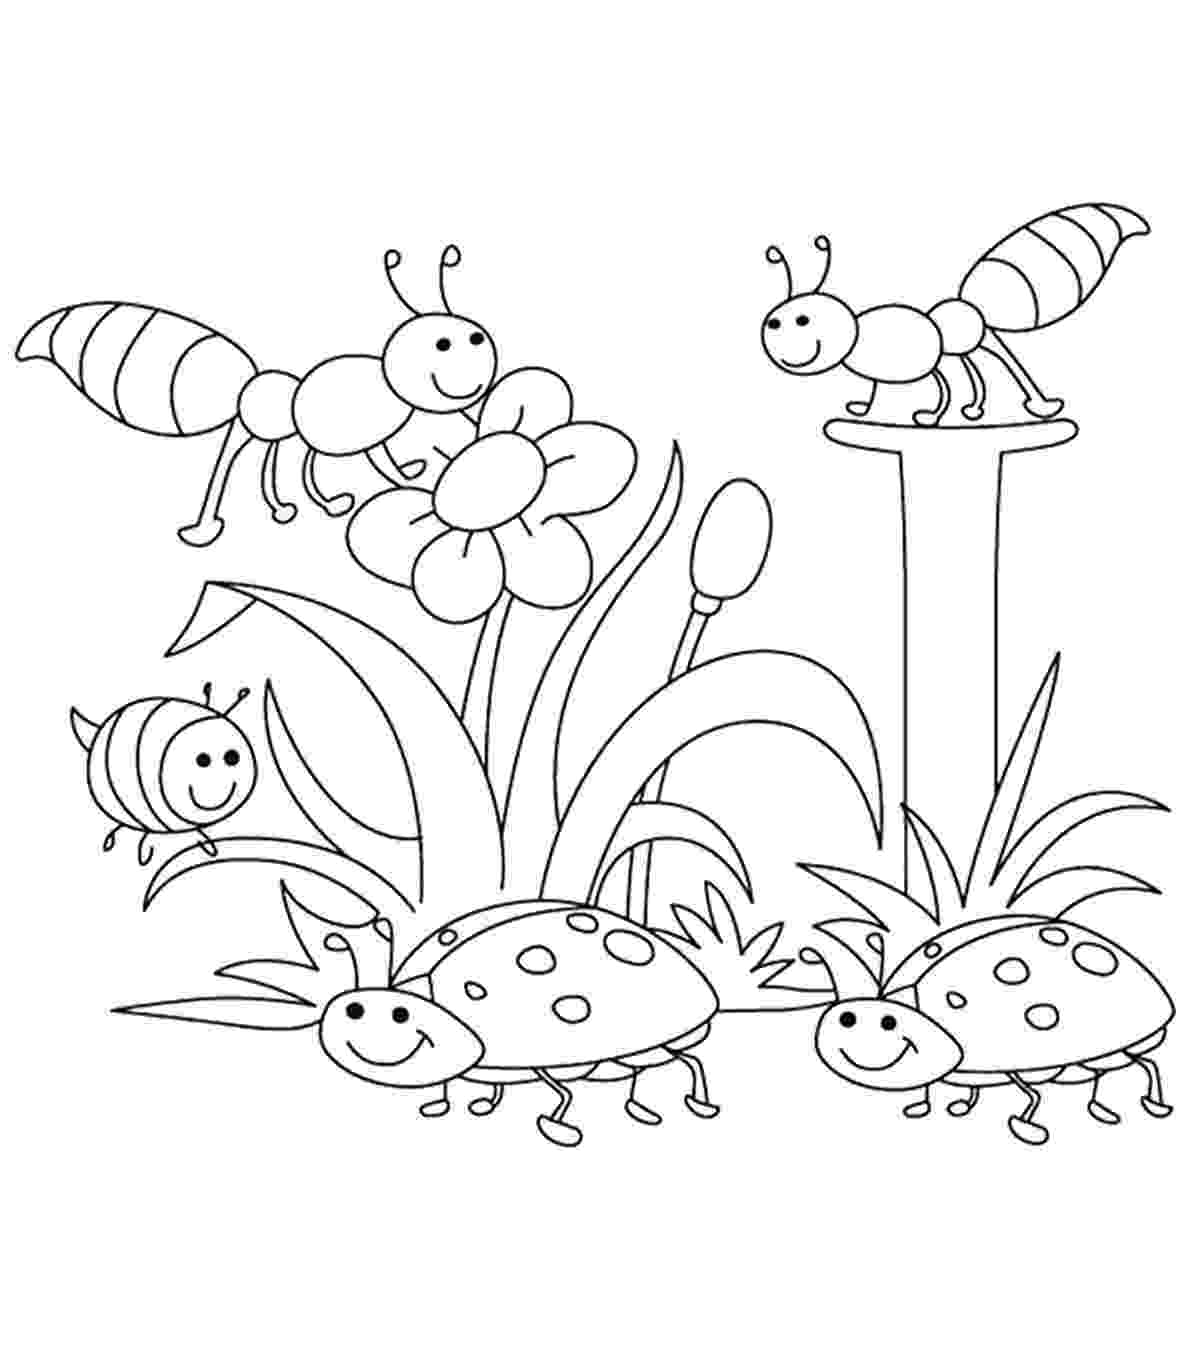 spring flowers printable coloring pages 35 free printable spring coloring pages flowers printable spring coloring pages